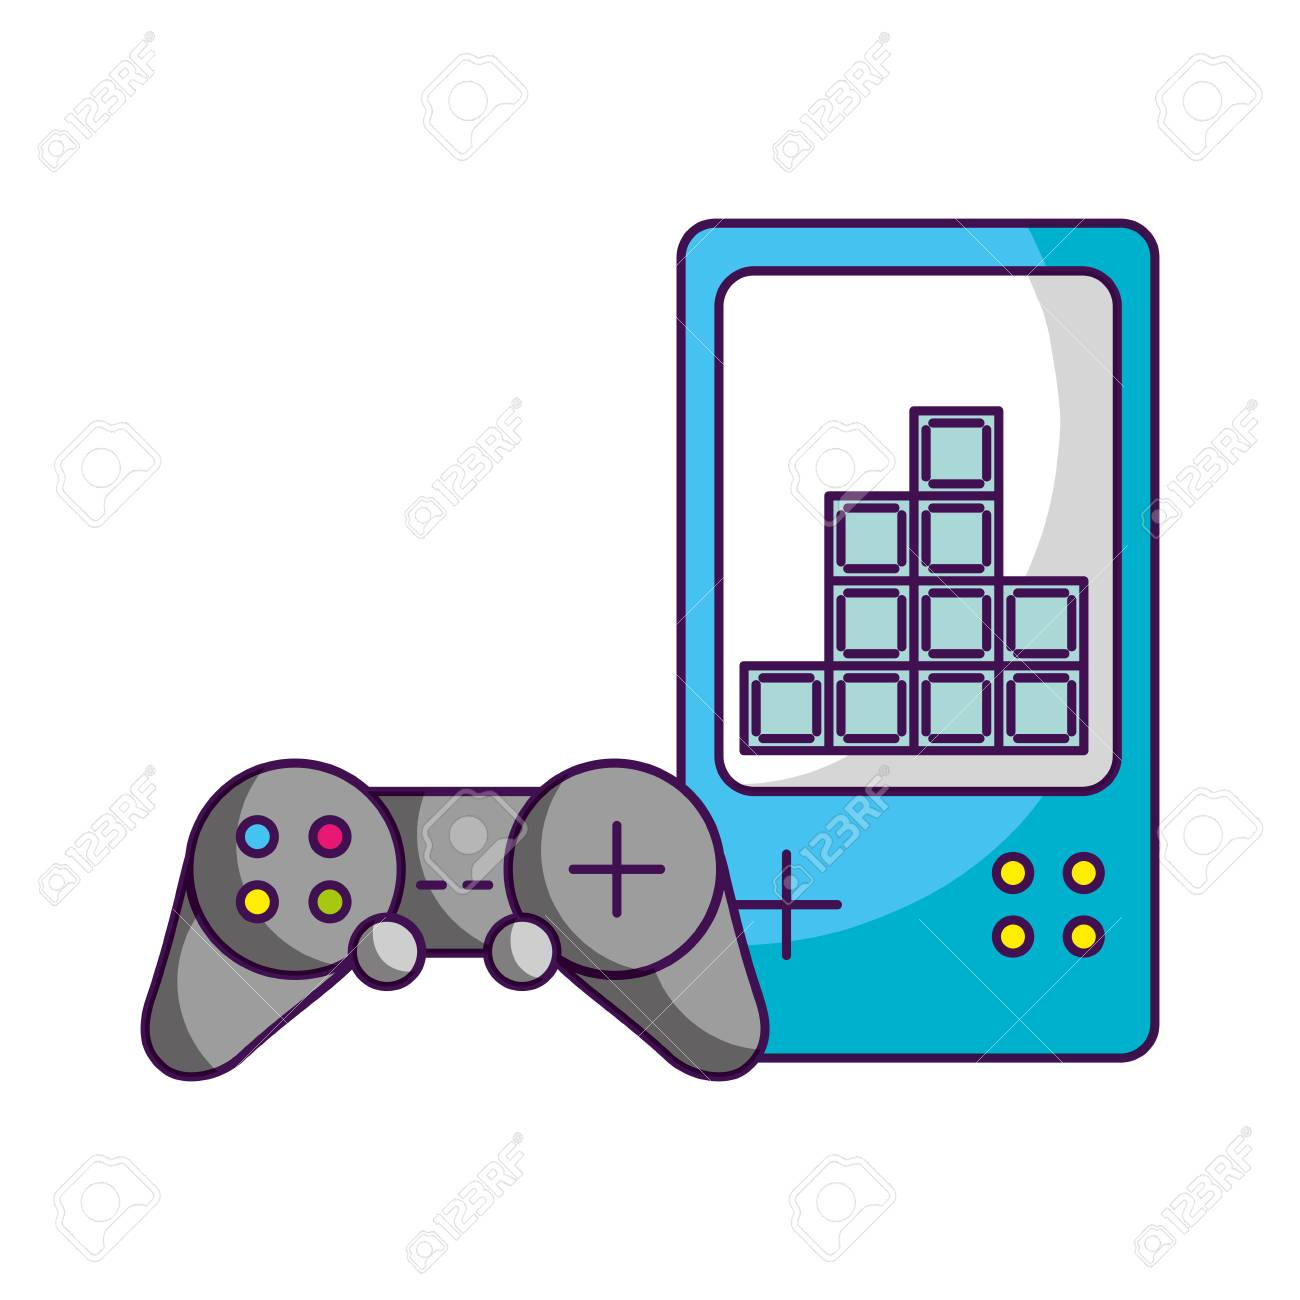 gamepad control video game white background vector illustration - 126463953